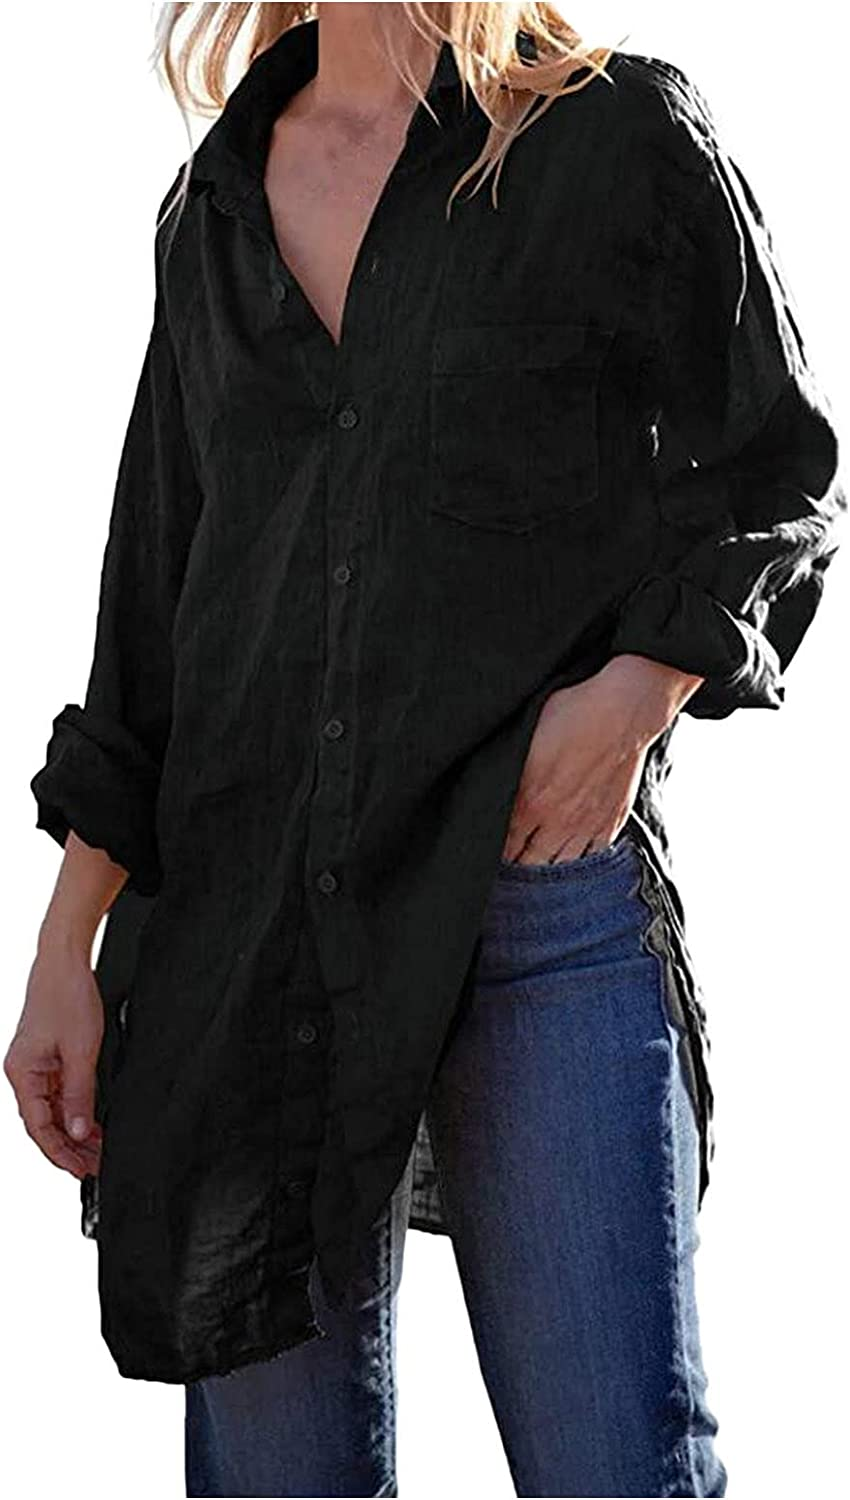 Shirt Dresses for Women Button Down Knee Plus Max 76% OFF Length S Long Cash special price Size